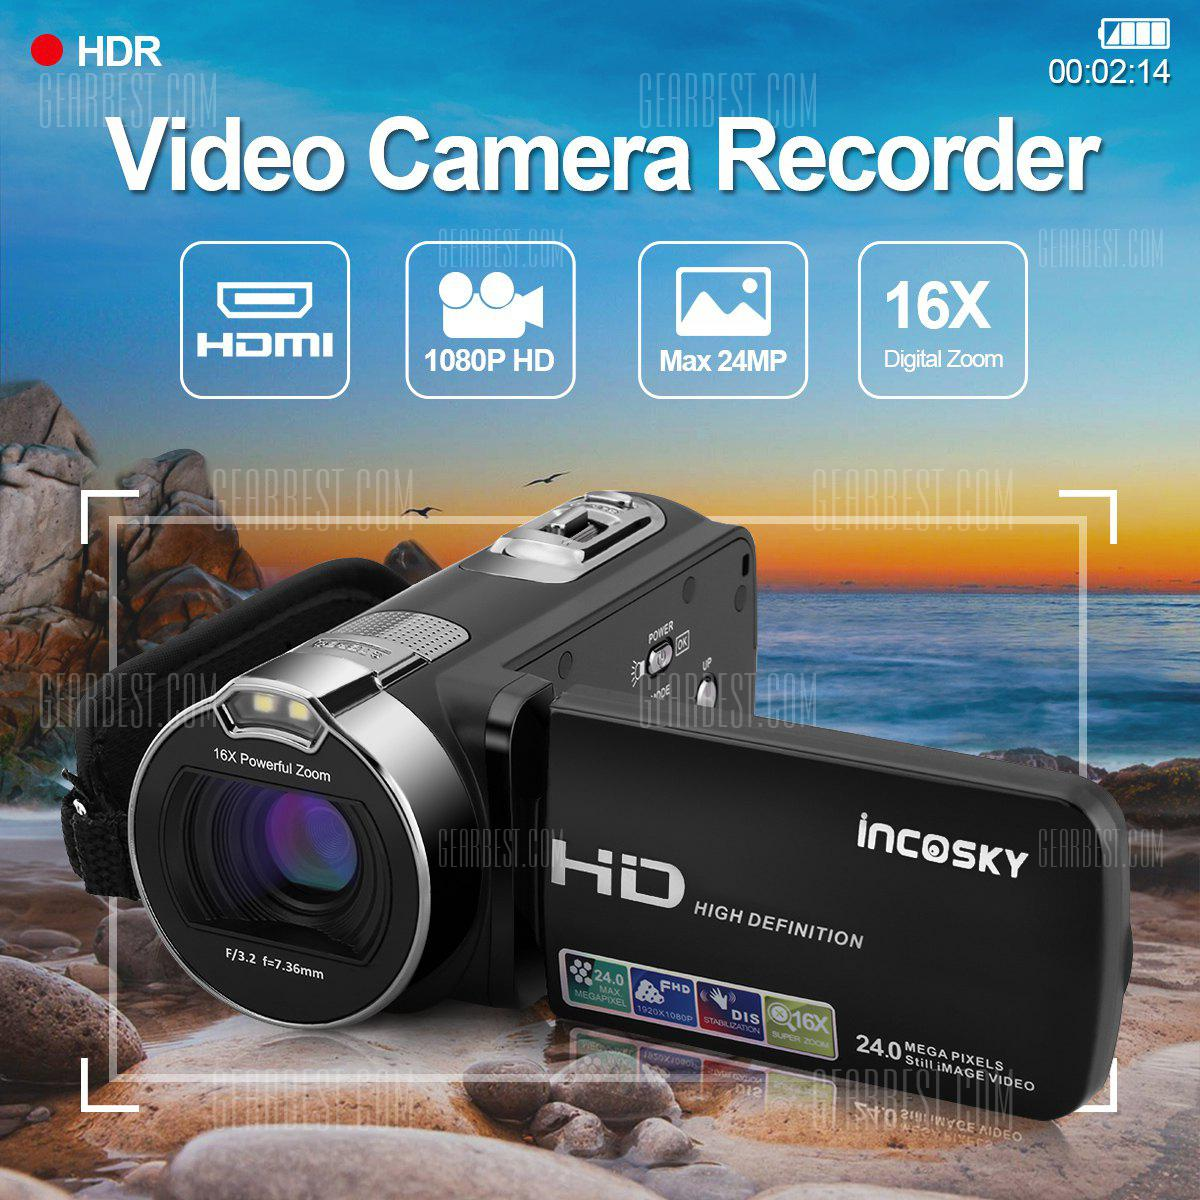 Incosky 1080P FULL HD Portable Digital Video Camera 2.7 TFT LCD 24MP 16x Zoom Camcorder DV AV Output Night Light Black AU